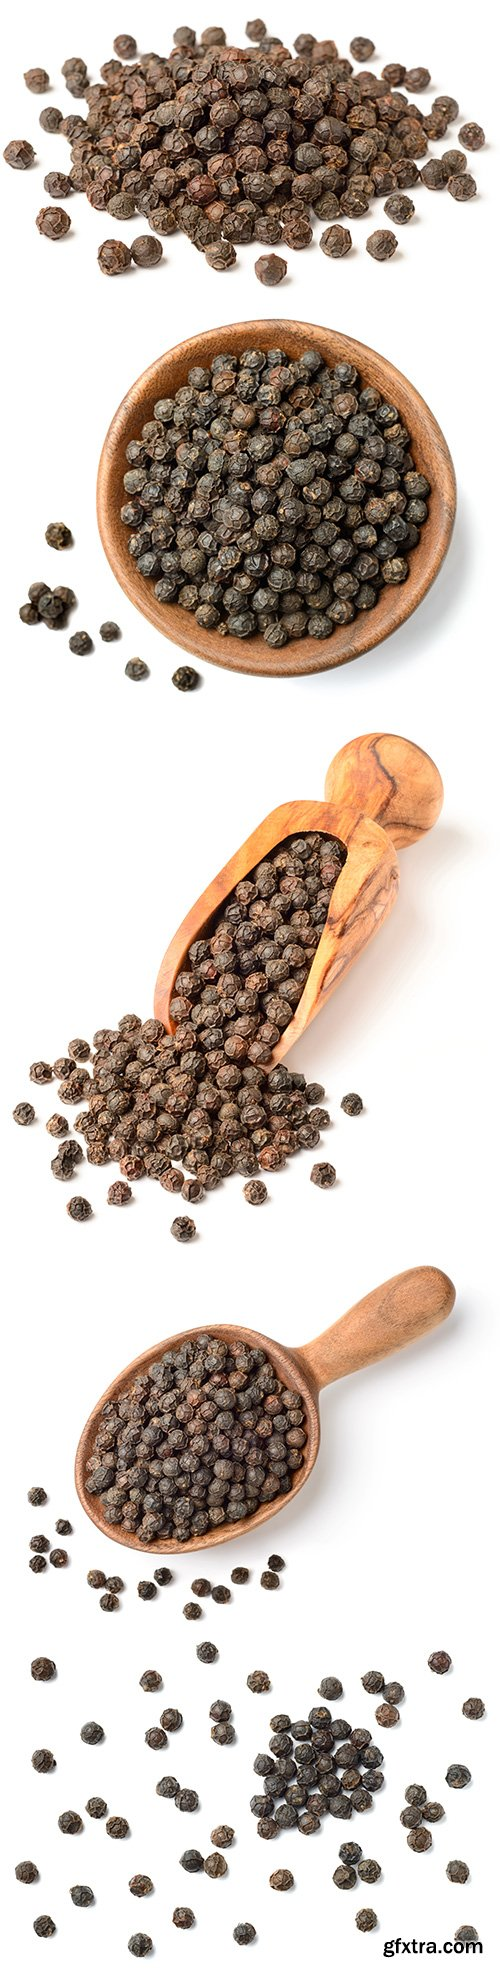 Dried Black Peppercorns Isolated - 8xJPGs